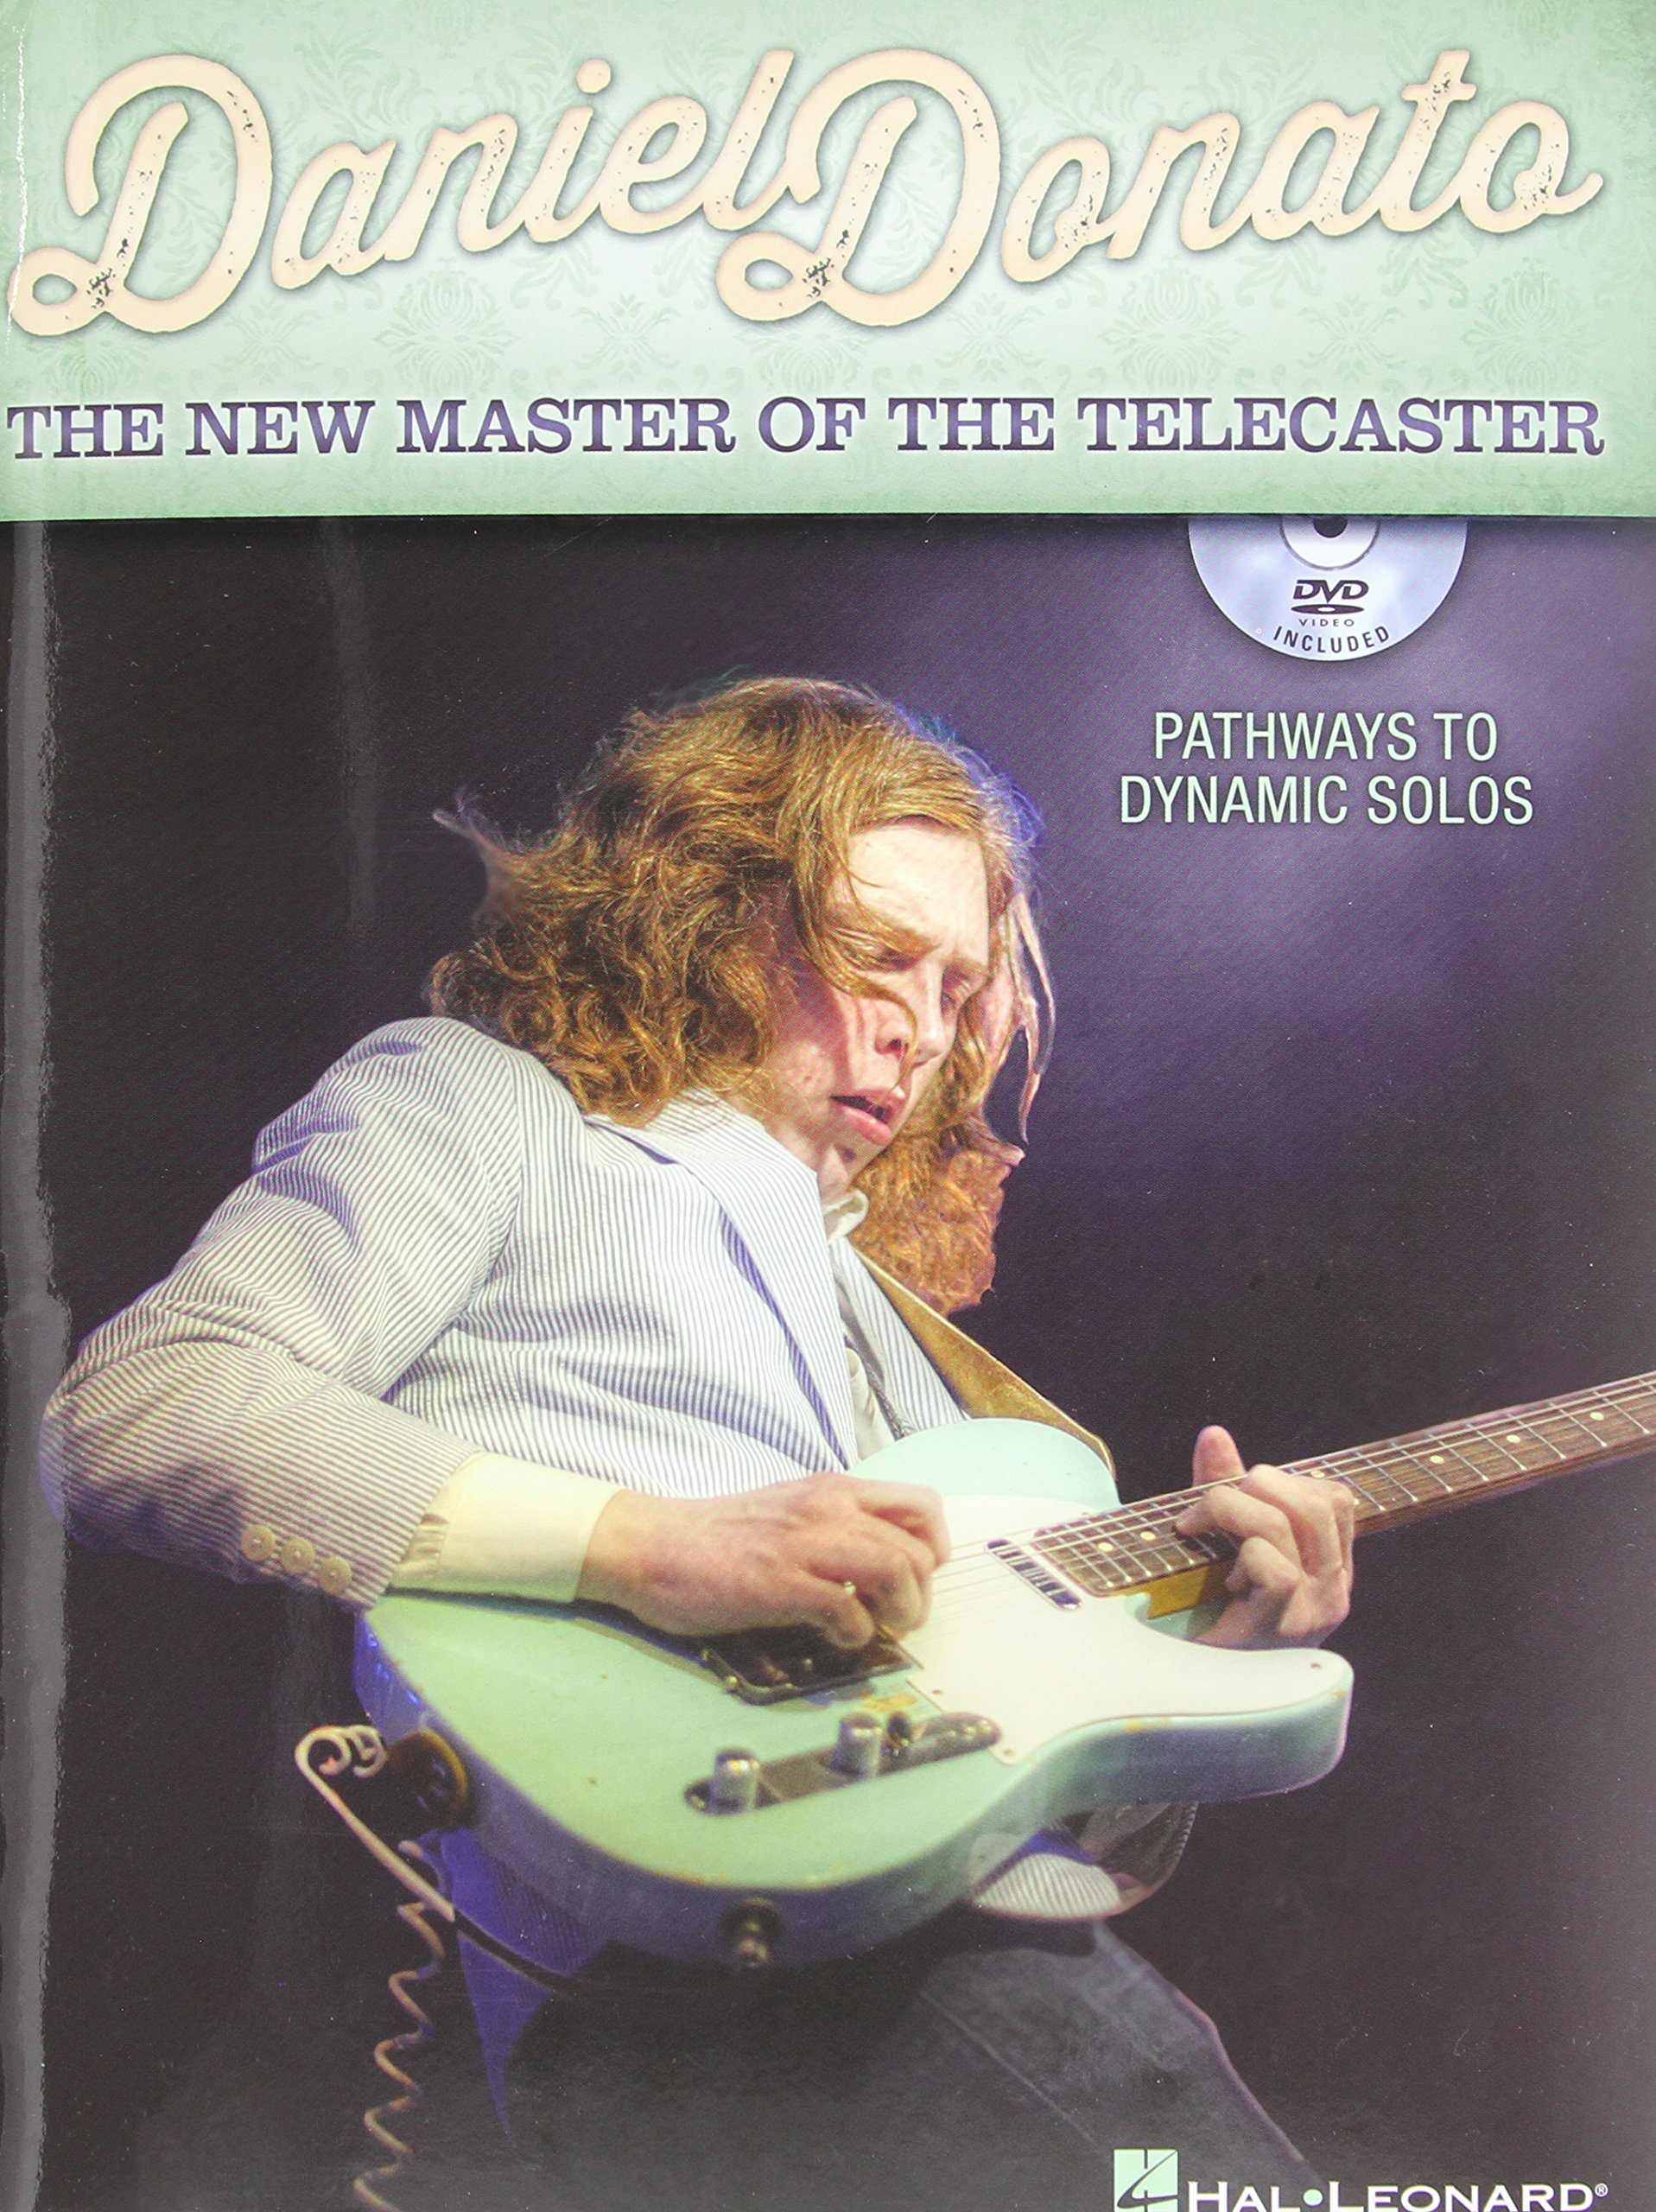 daniel-donato-the-new-master-of-the-telecaster-pathways-to-dynamic-solos-book-dvd